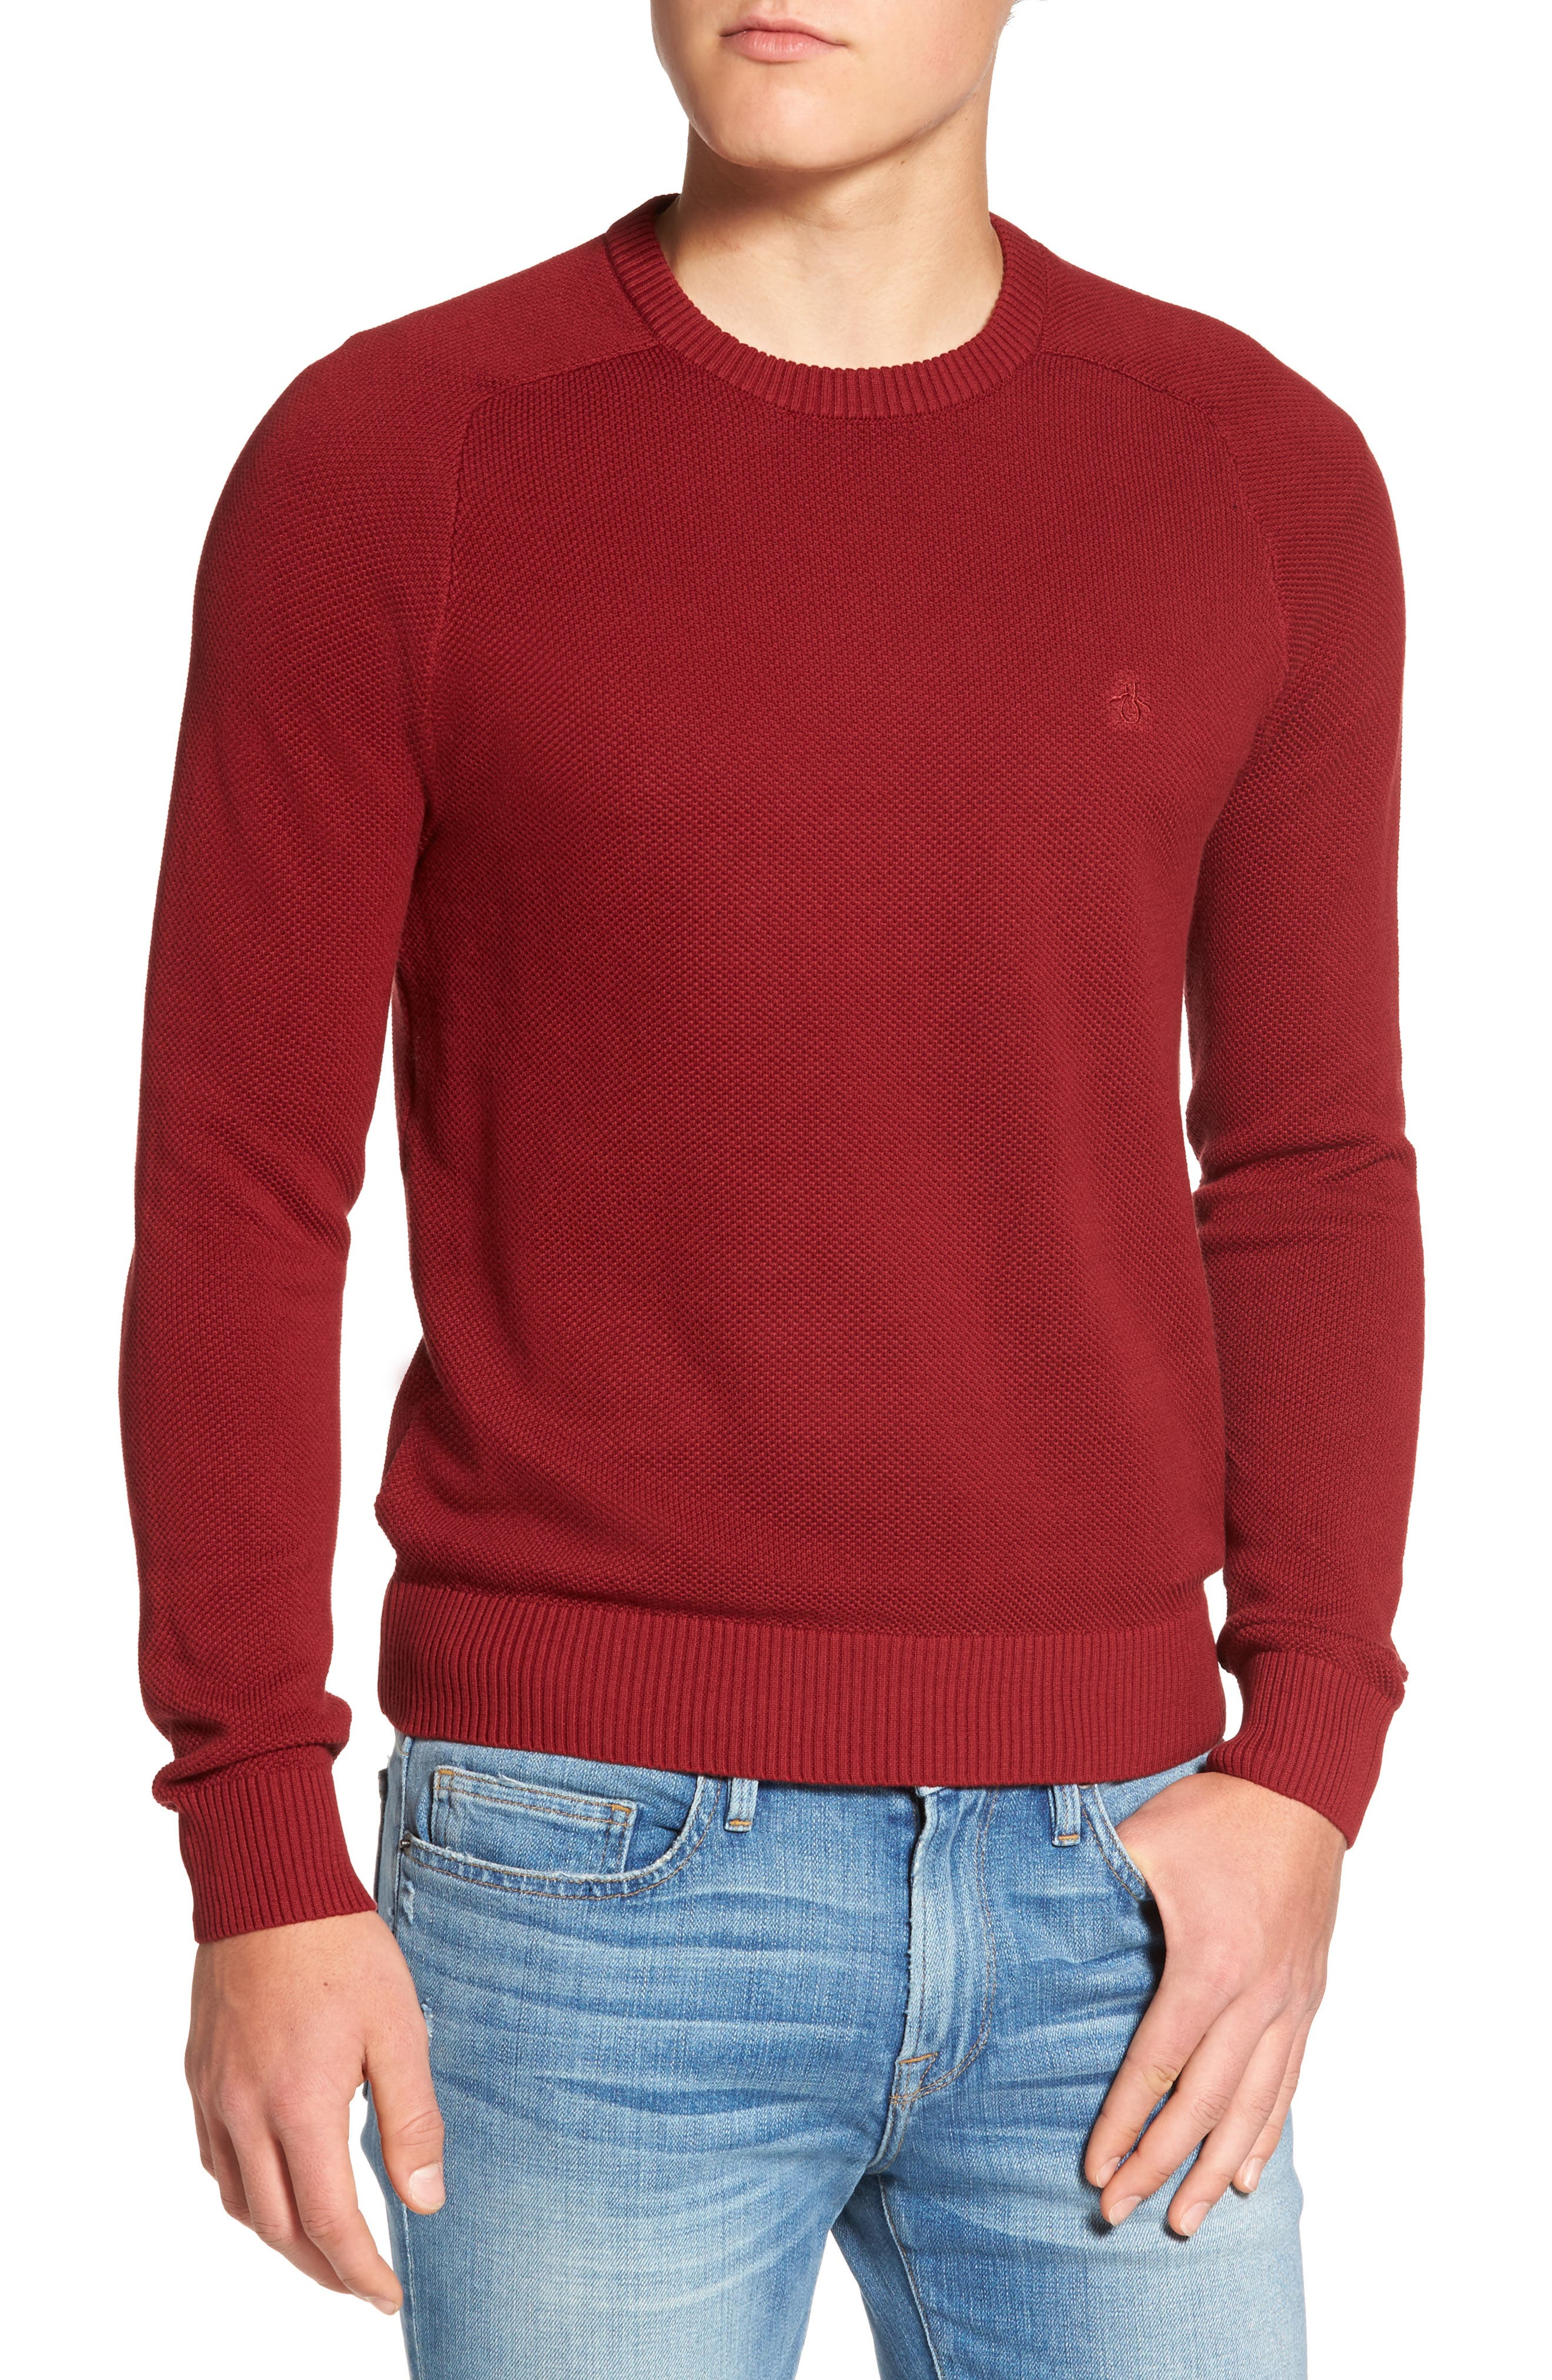 Original Penguin Honeycomb Sweater